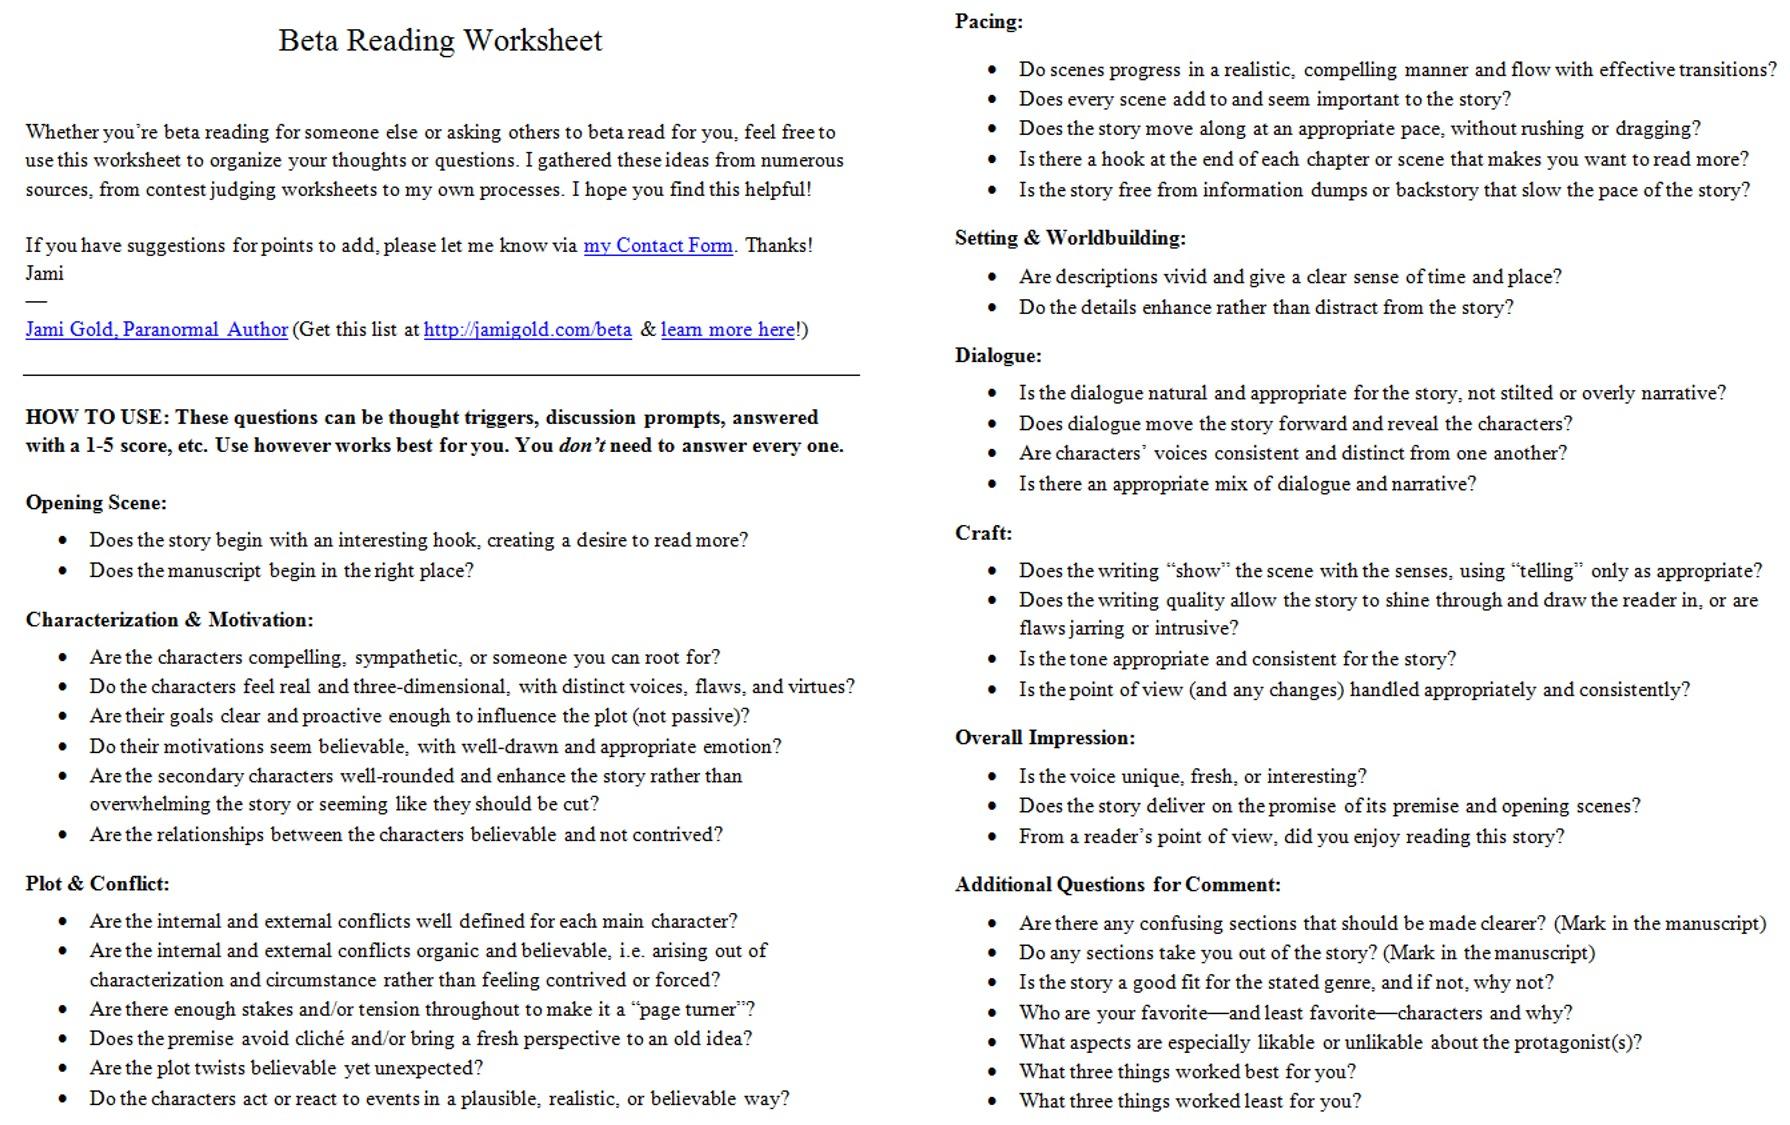 Aldiablosus  Terrific Worksheets For Writers  Jami Gold Paranormal Author With Likable Screen Shot Of The Twopage Beta Reading Worksheet With Lovely Open And Closed Questions Worksheet Also Helping Verbs Worksheets Th Grade In Addition Literature Worksheets For Middle School And Fifth Grade Ela Worksheets As Well As Algebra Online Worksheets Additionally Hazards In The Home Worksheets From Jamigoldcom With Aldiablosus  Likable Worksheets For Writers  Jami Gold Paranormal Author With Lovely Screen Shot Of The Twopage Beta Reading Worksheet And Terrific Open And Closed Questions Worksheet Also Helping Verbs Worksheets Th Grade In Addition Literature Worksheets For Middle School From Jamigoldcom